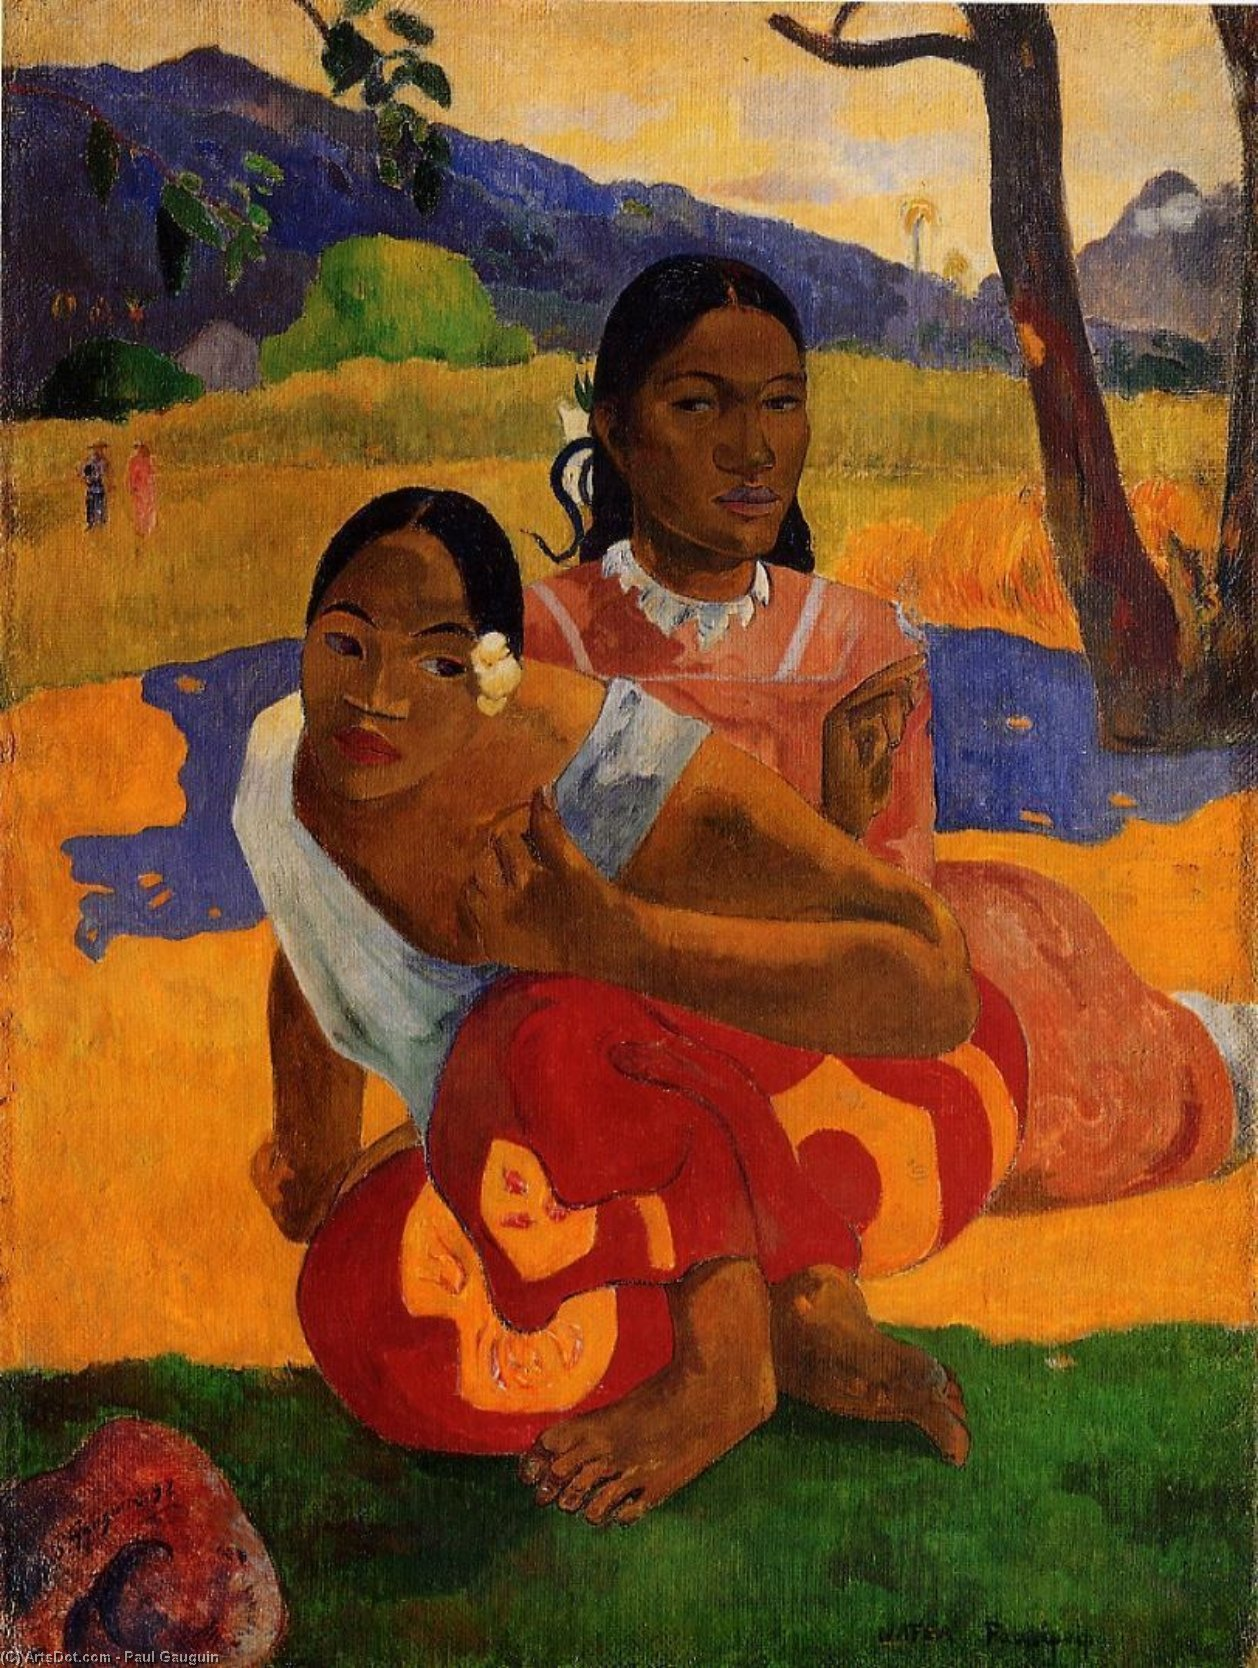 Wikioo.org - The Encyclopedia of Fine Arts - Painting, Artwork by Paul Gauguin - Nafeaffaa Ipolpo (also known as When Will You Marry.)